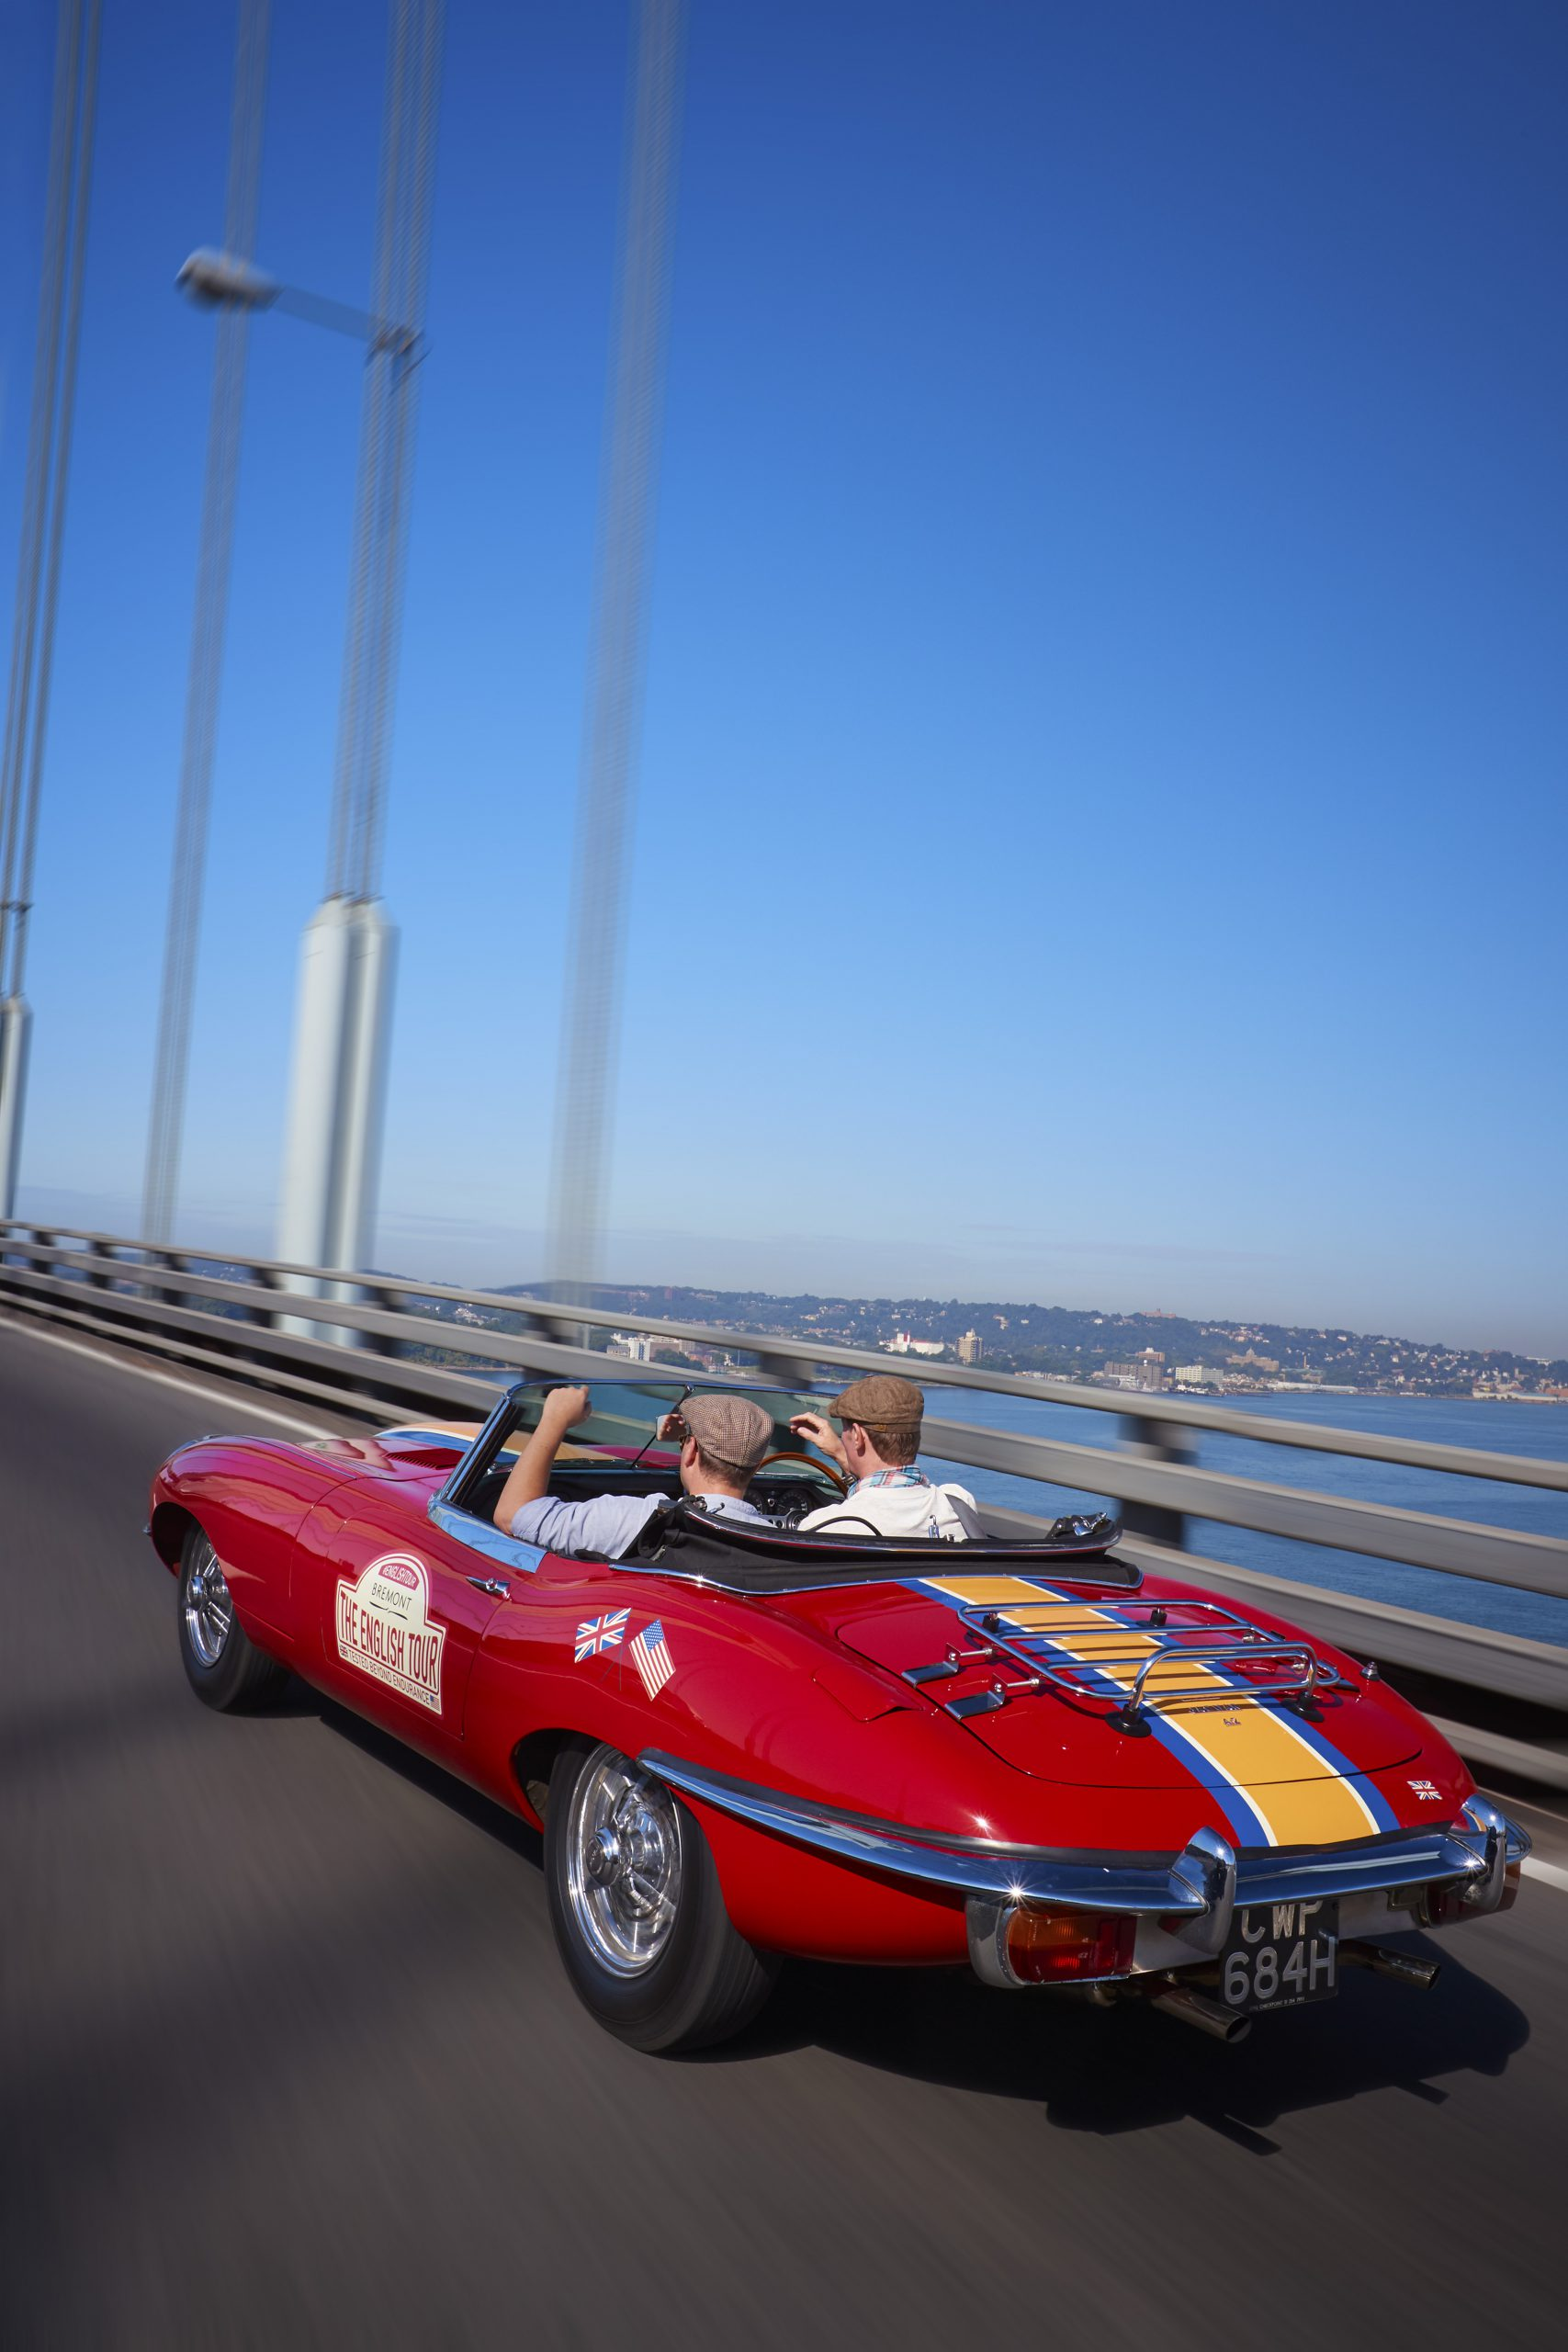 EVENT: Never mind the bollards, this is the Bremont 'English Tour' of America